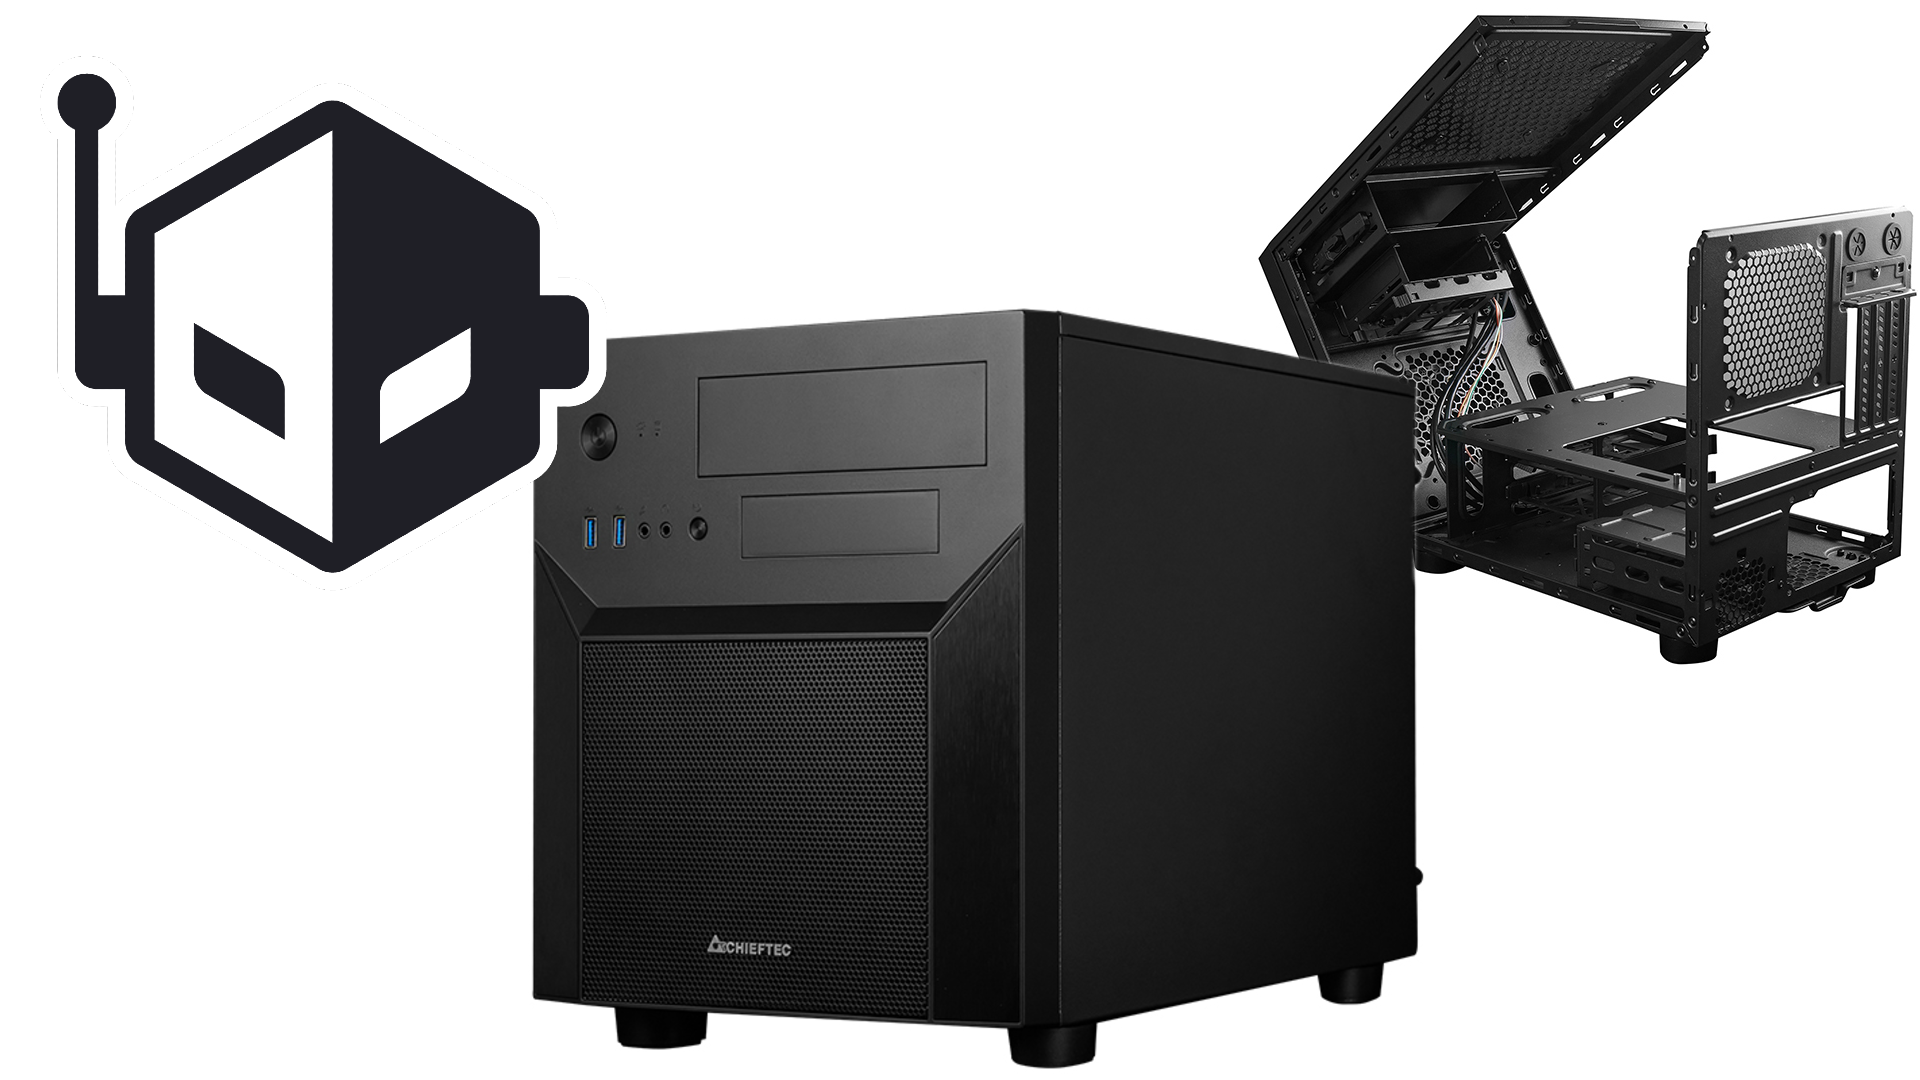 Chieftec Introduces the CL-02B-OP: A Unique mATX Cube Case